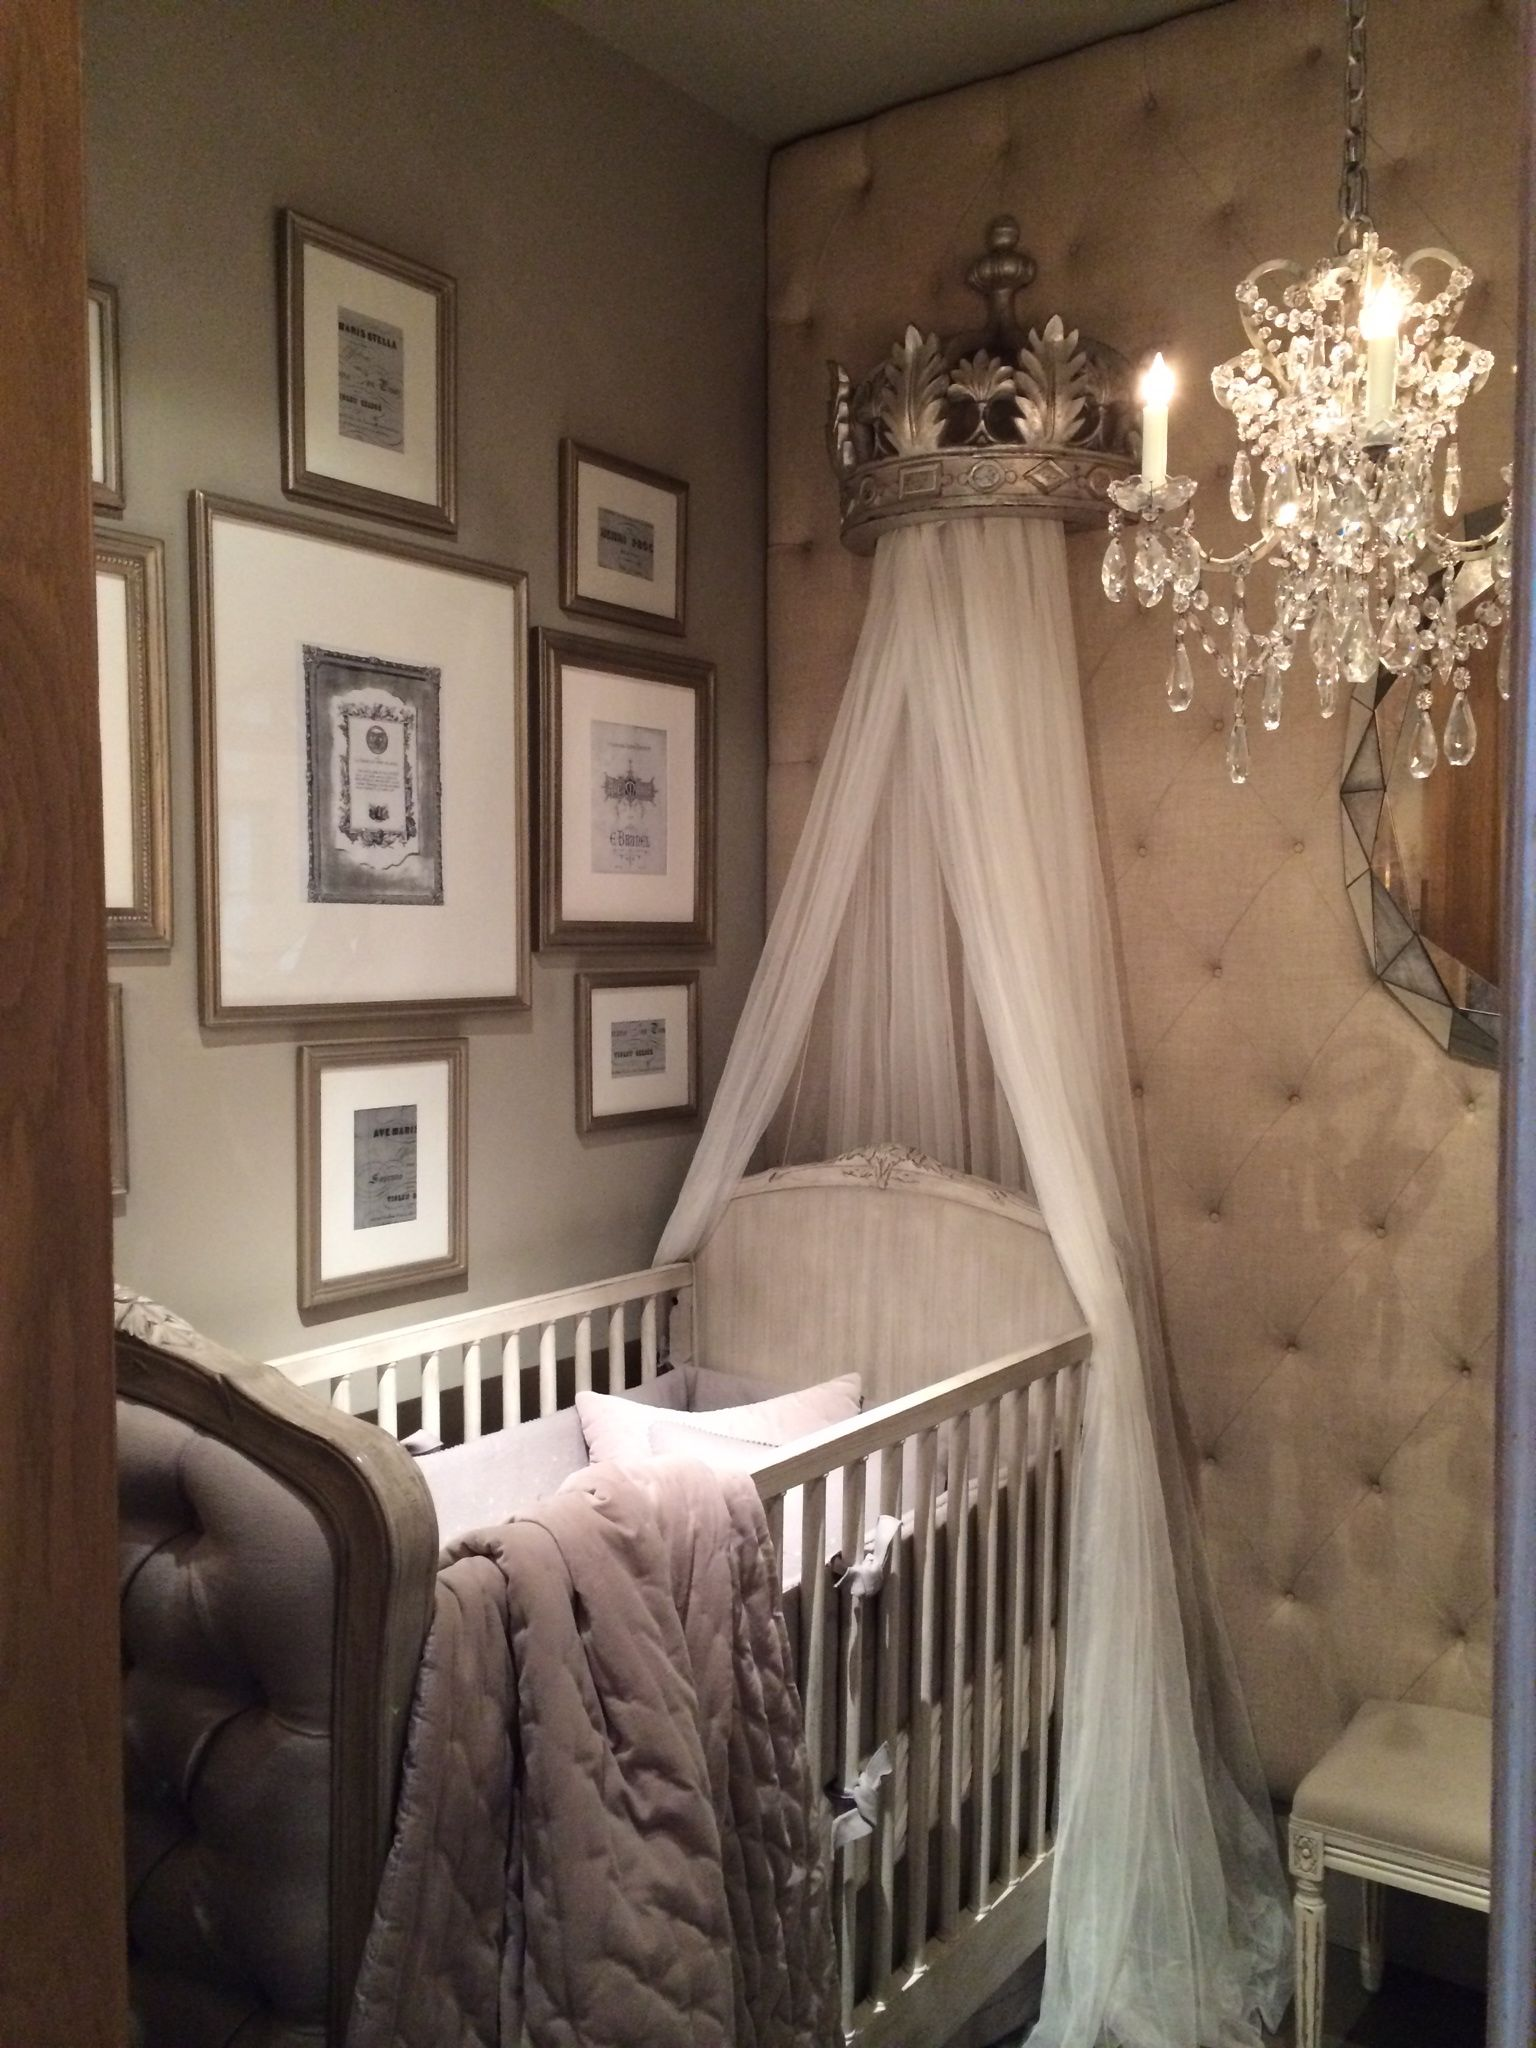 Round Crib from Baby & Child Restoration Hardware - If only ...